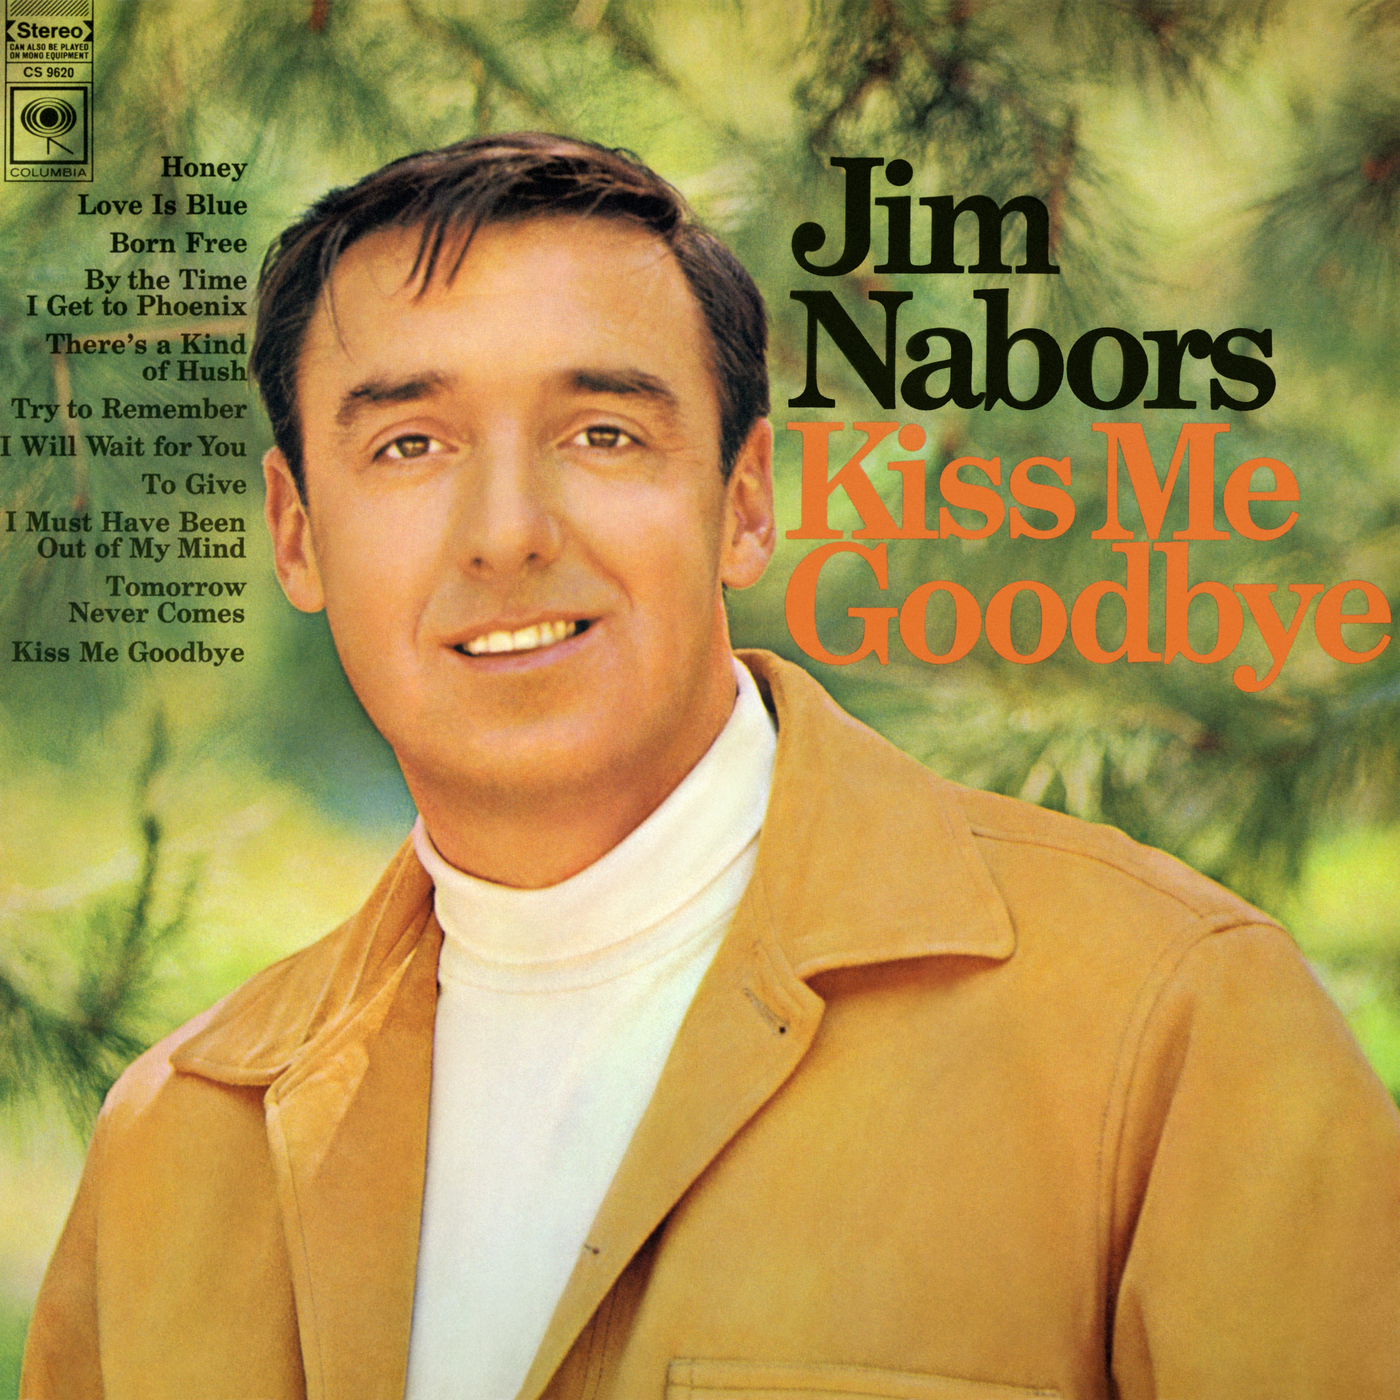 Kiss Me Goodbye - Jim Nabors